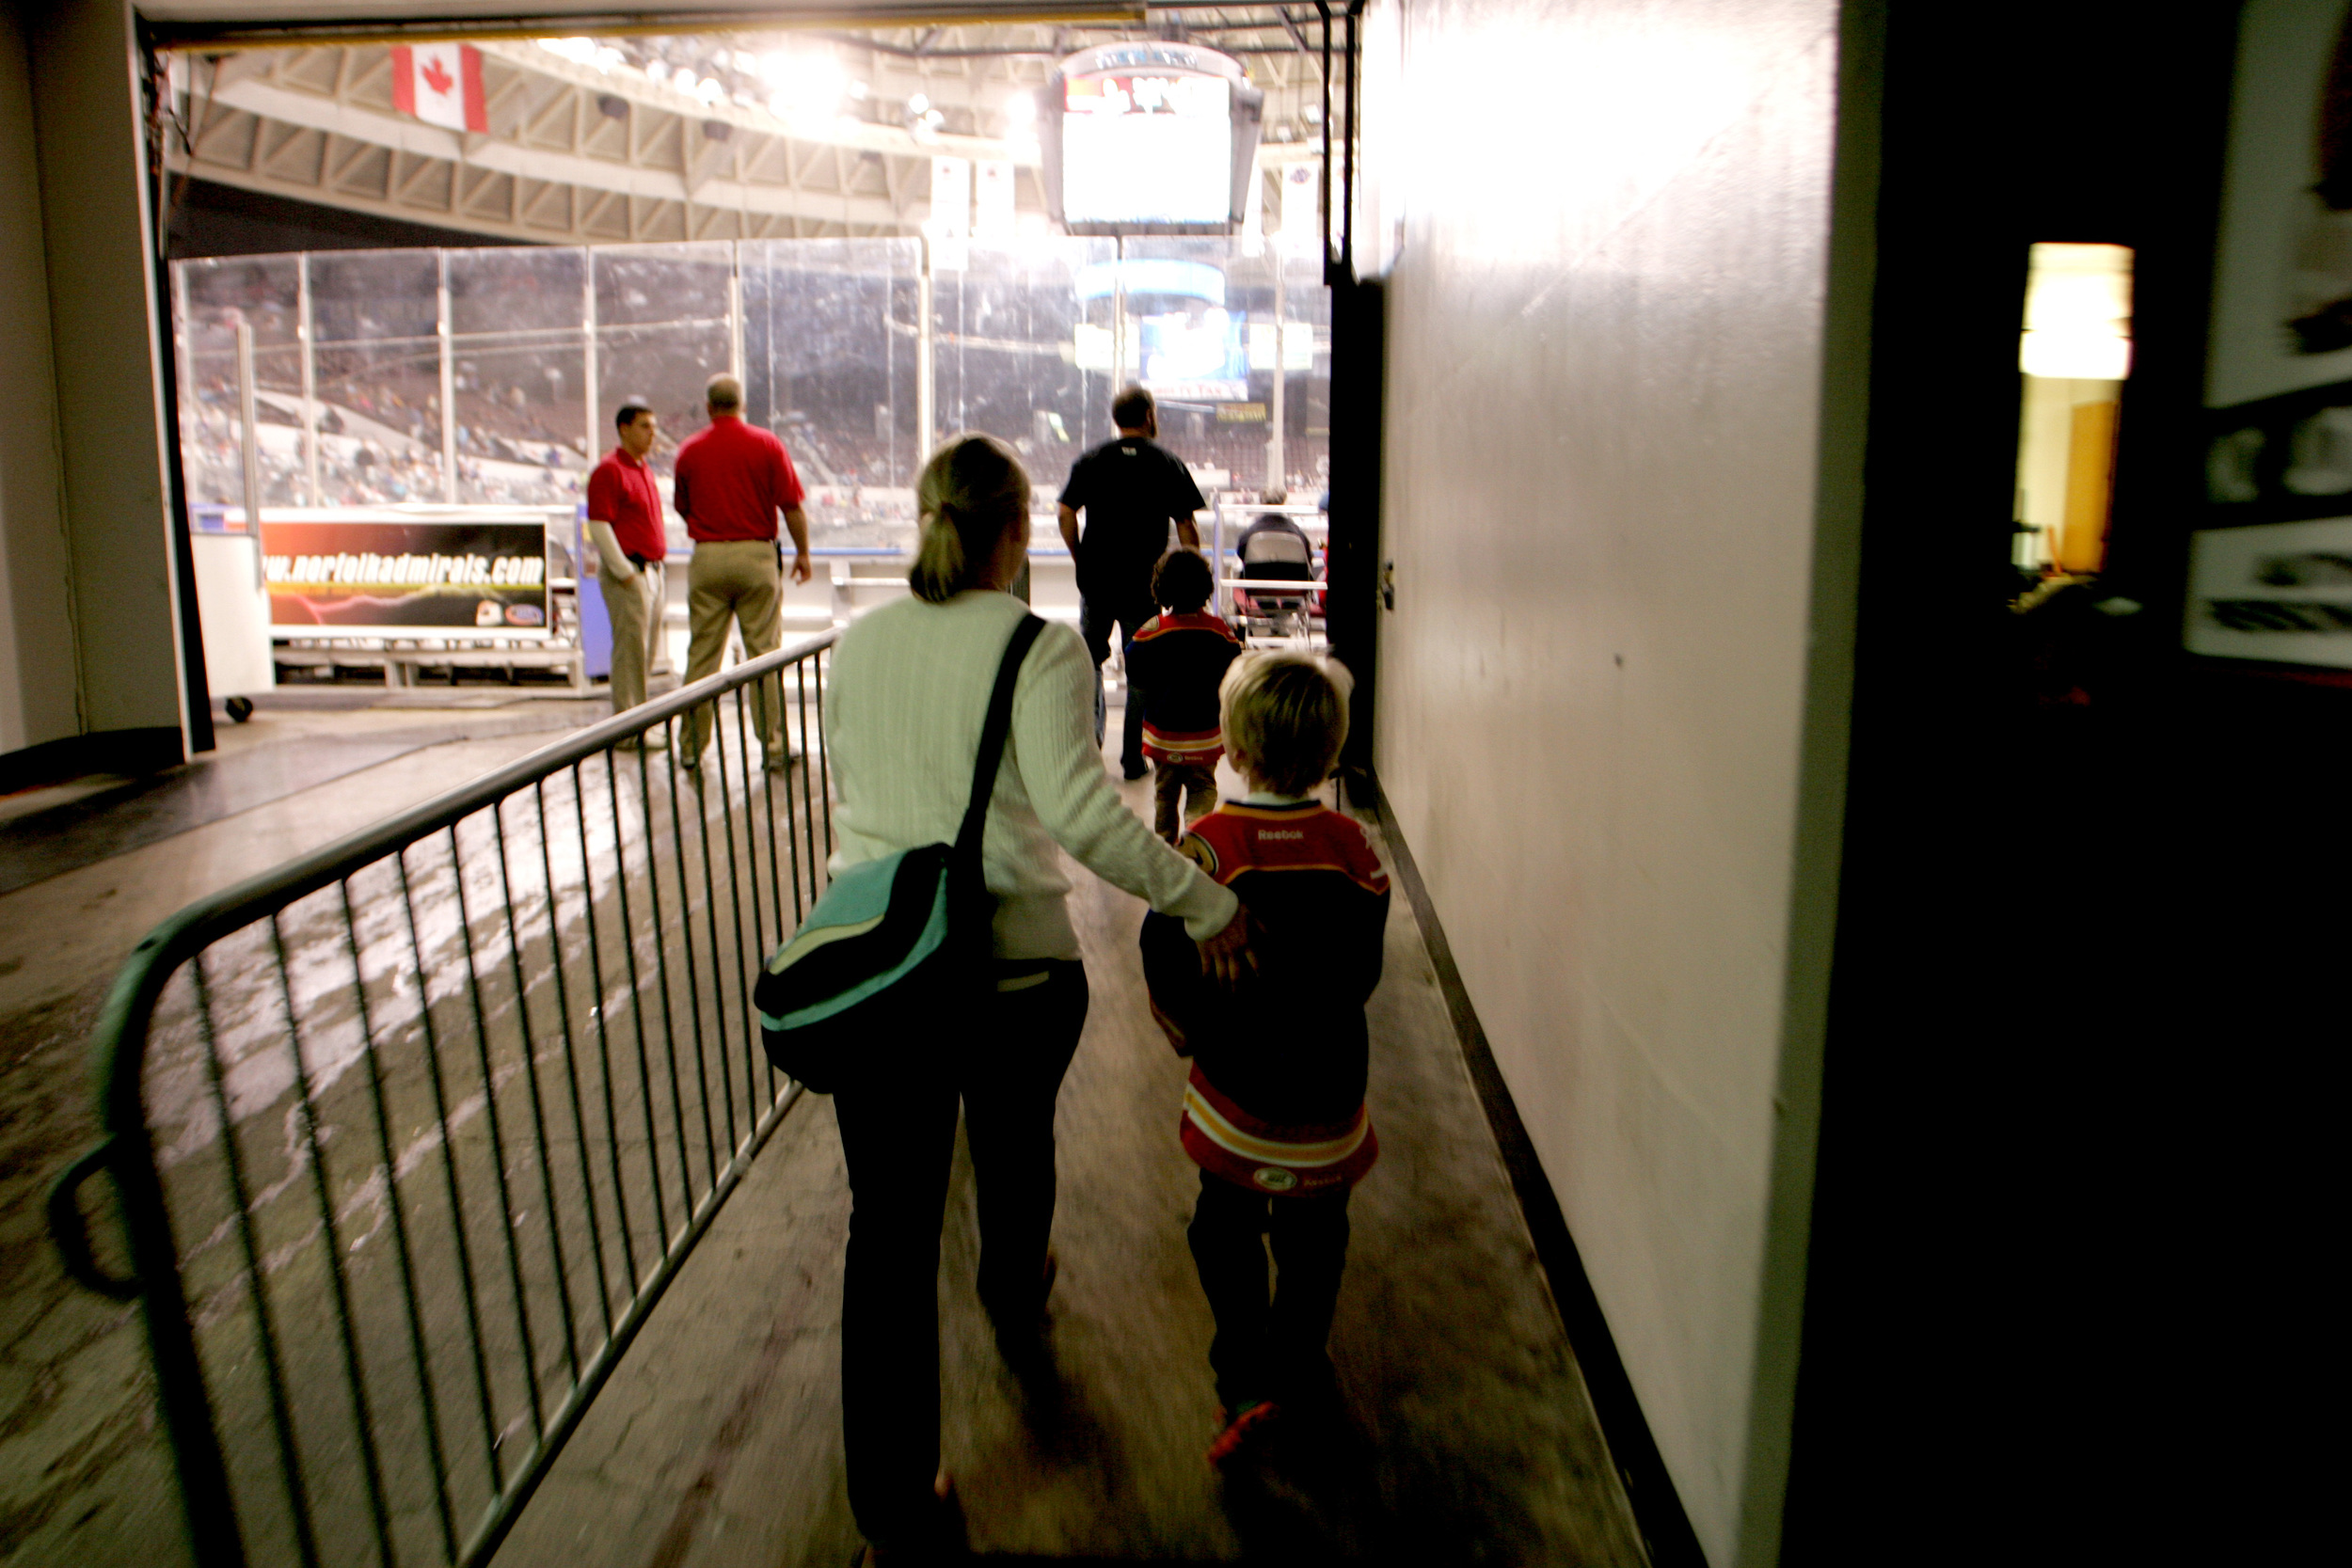 Max Tarantino, 7, walks up the ramp with his mom, Rebecca Hall, to their seats behind the glass before the start of the Admirals' home opener against Hershey, Saturday, Oct. 11, 2014 at Scope in Norfolk.    (Jason Hirschfeld | For The Virginian-Pilot)